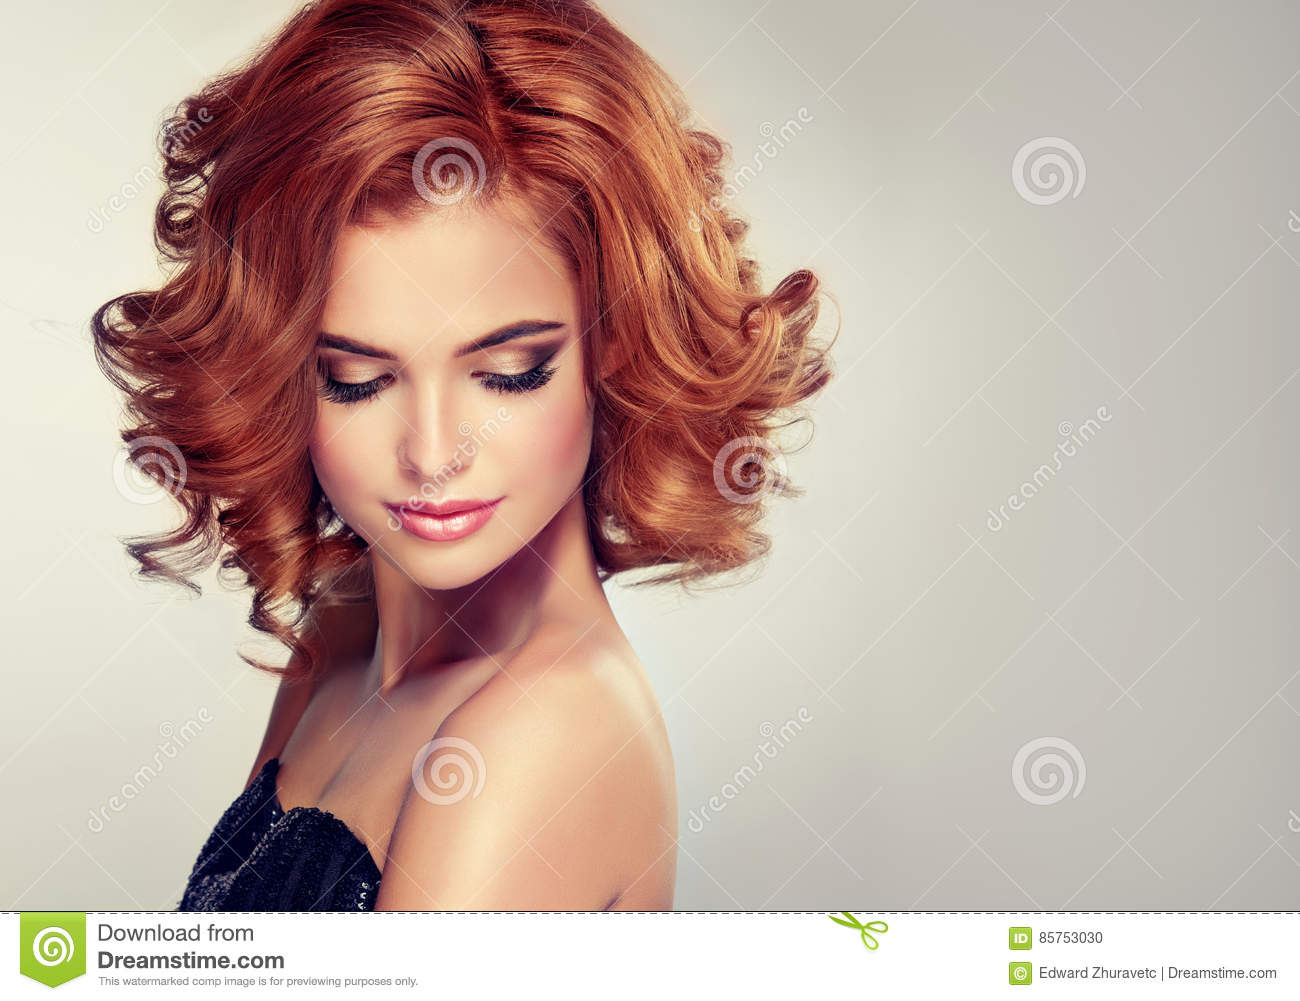 Brunette with middle length curled hair and bright make up.